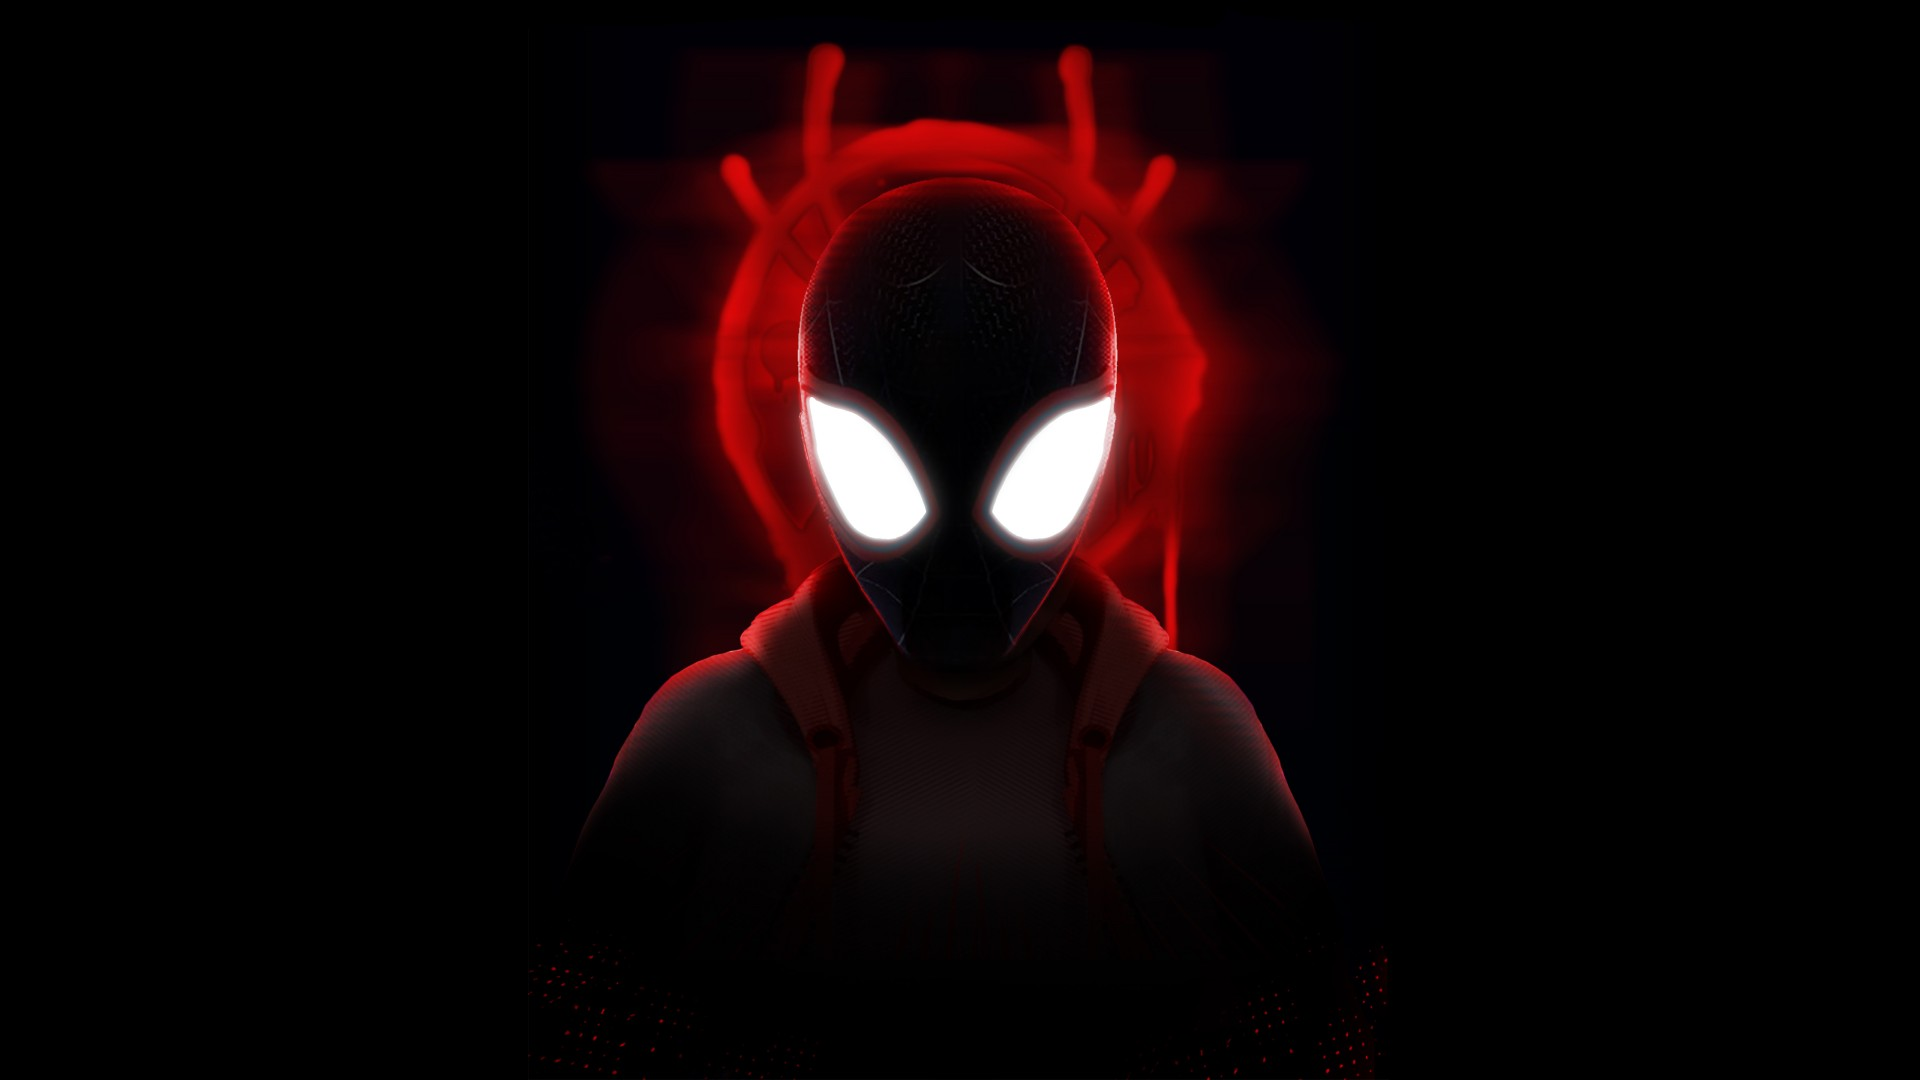 Black Spiderman Iphone Wallpaper Spider Man Into The Spider Verse 5k Wallpapers Hd